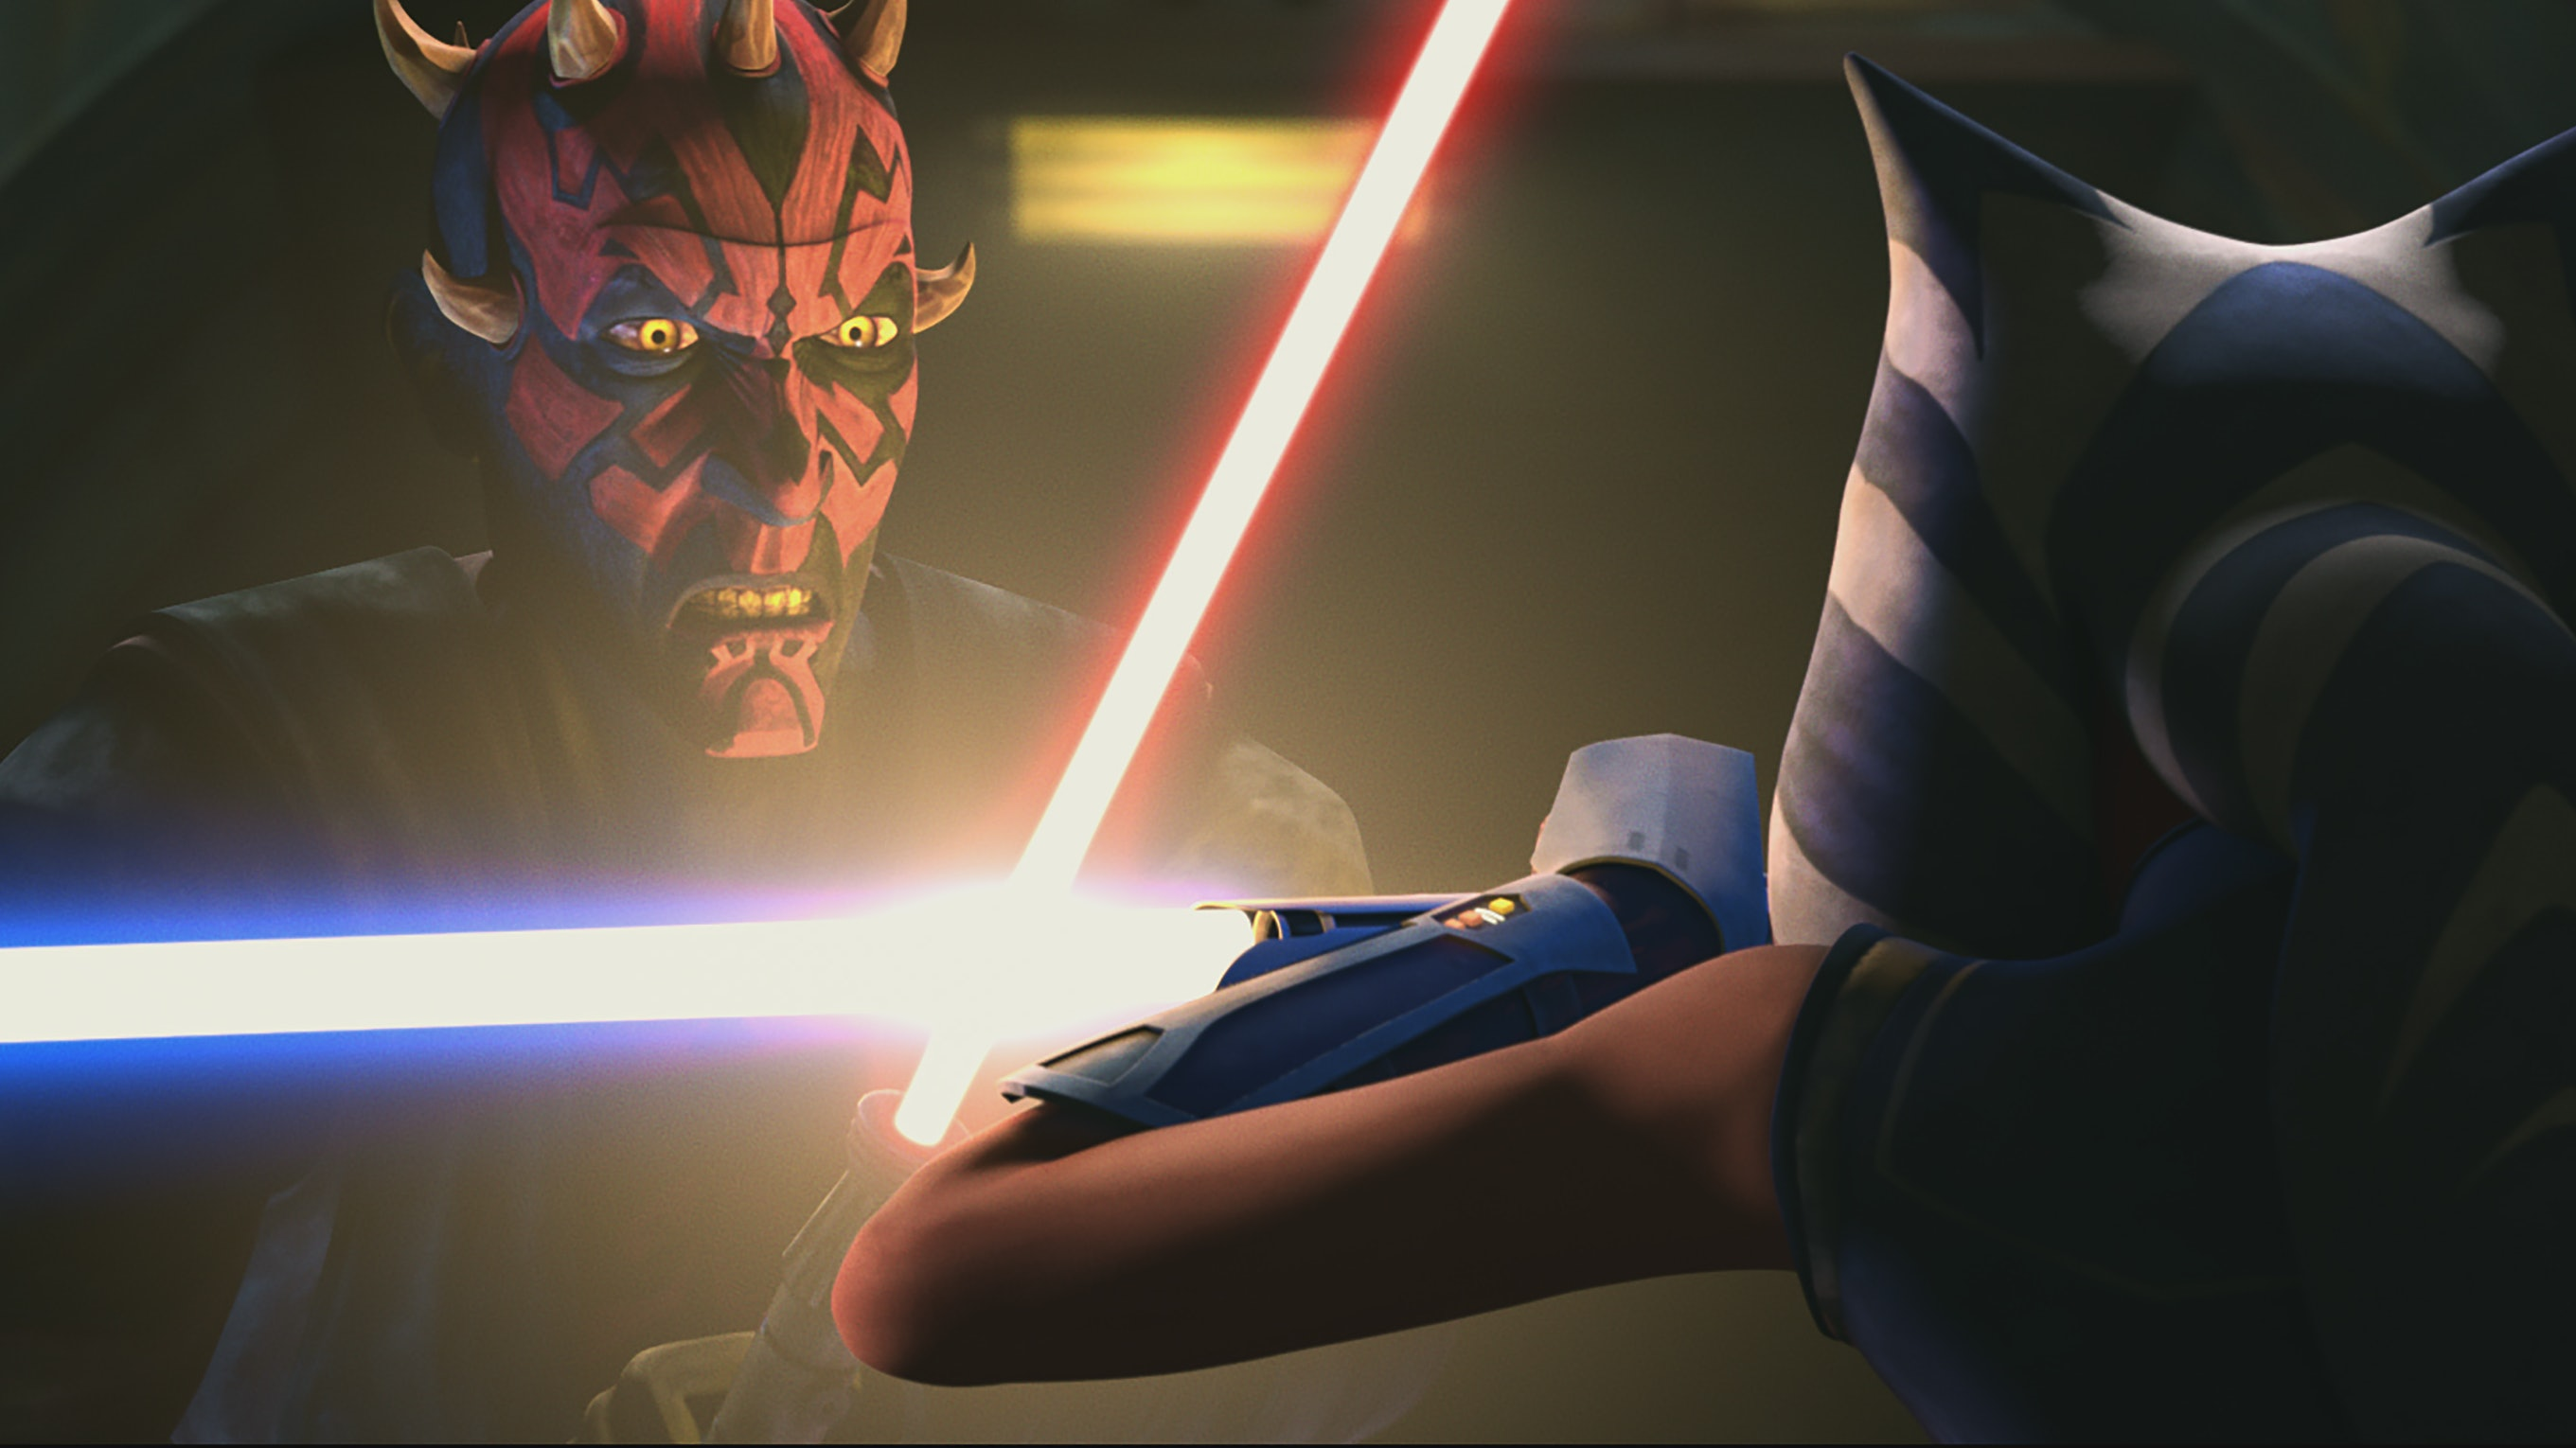 Clone Wars Finale Just Changed Revenge Of The Sith Canon In 3 Epic Ways